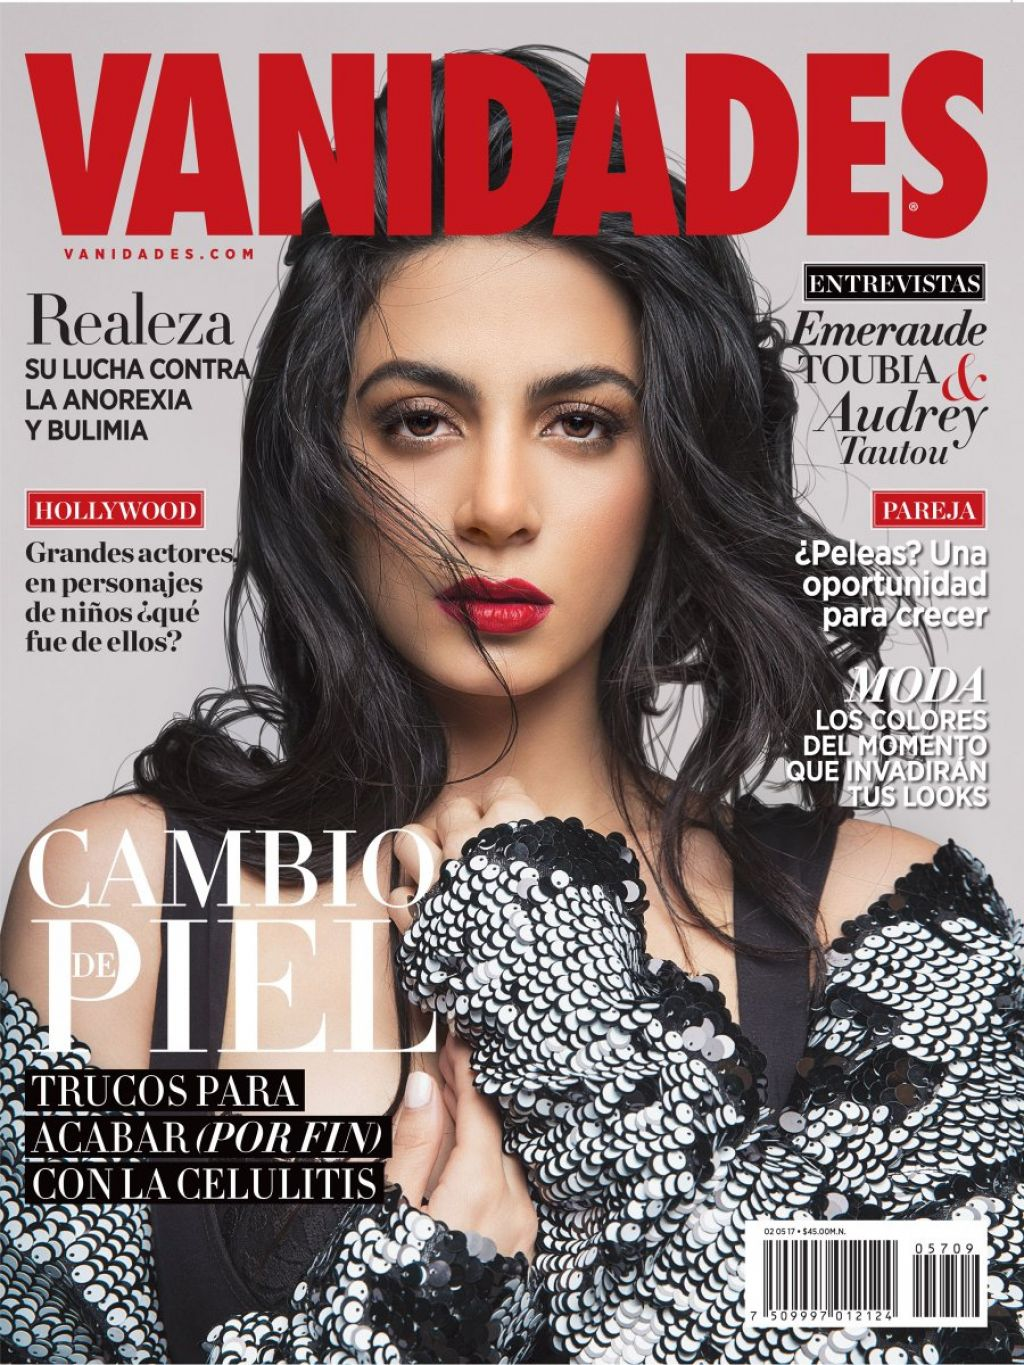 Emeraude Toubia Vanidades Magazine April 2017 Issue